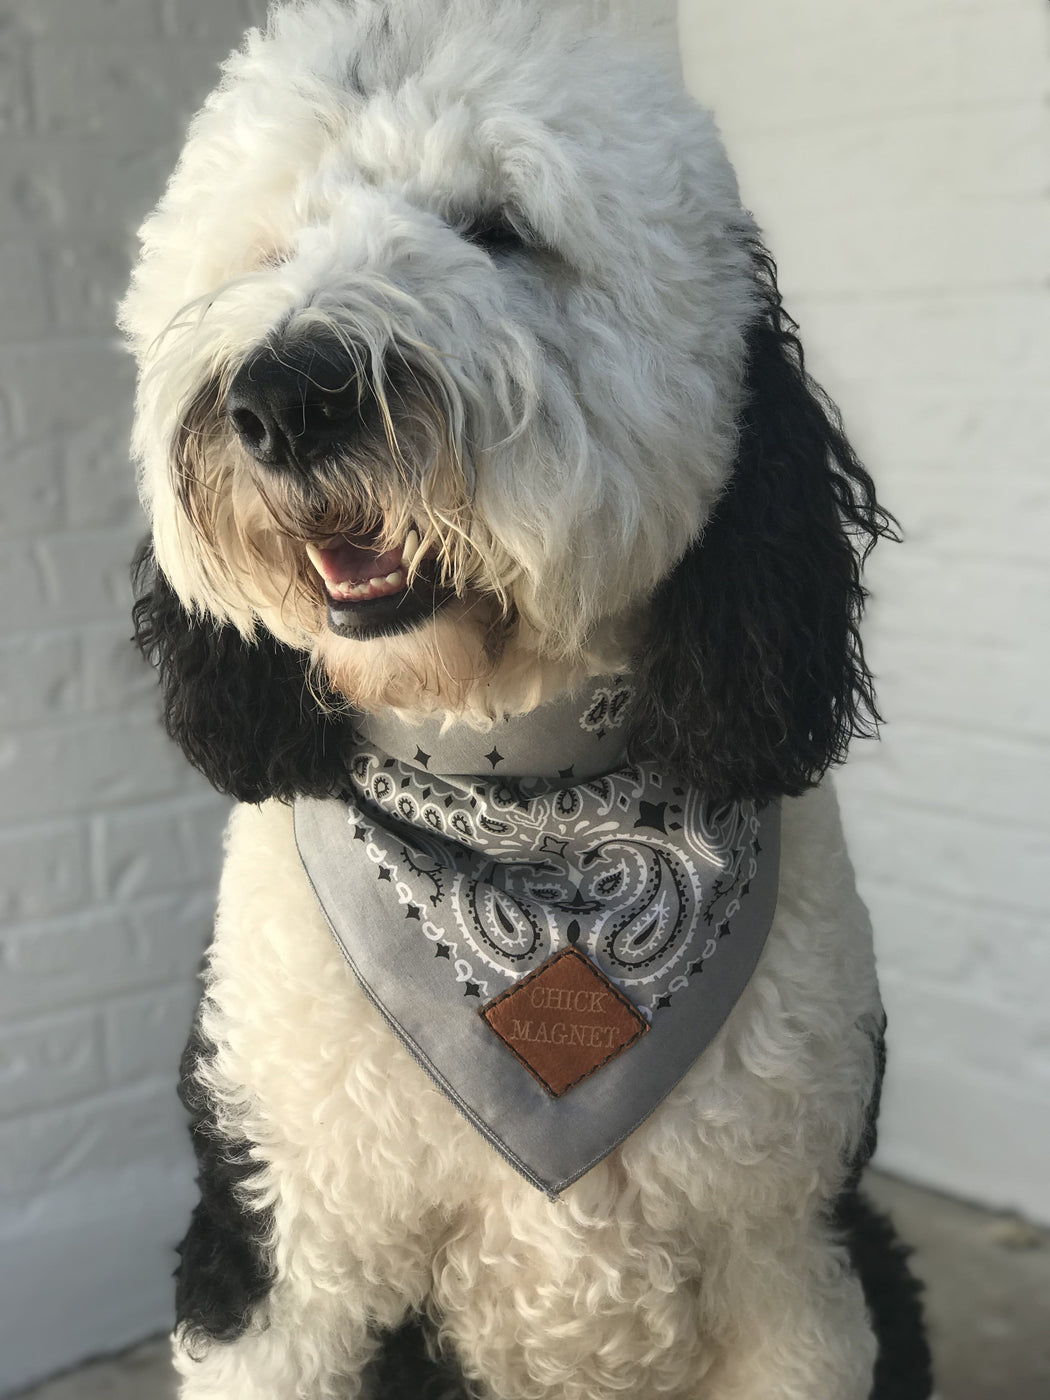 CHICK MAGNET PET BANDANA